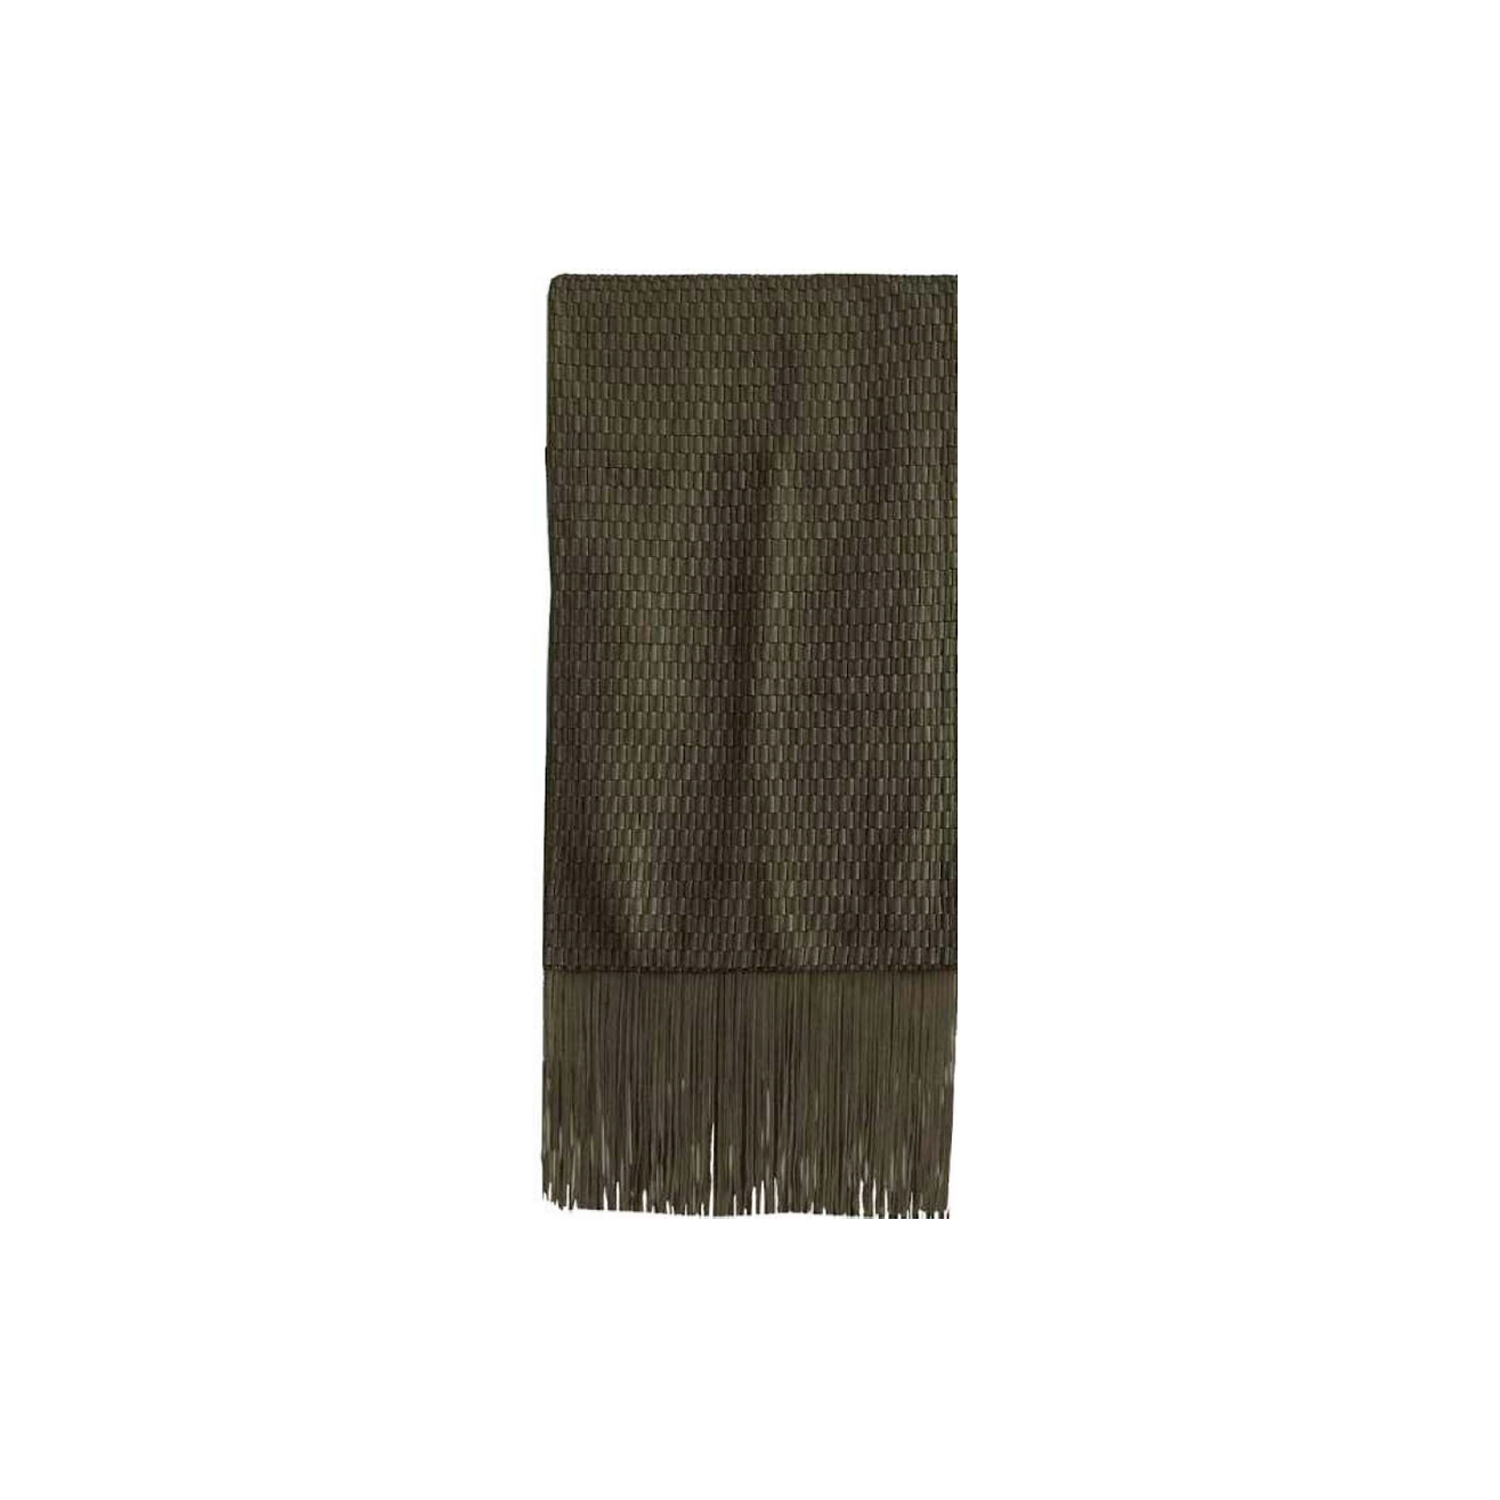 Maia Fringe Woven Leather Throw - The Maia Fringe Woven Leather Throw is designed to complement an ambient setting with natural and sophisticated feeling. Elisa Atheniense woven leather pieces, are handmade and manufactured in Brazil using an exclusive treated leather that brings the soft feel touch to every single piece.  Bespoke sizes and colours are also available upon request, see colour chart for reference. | Matter of Stuff